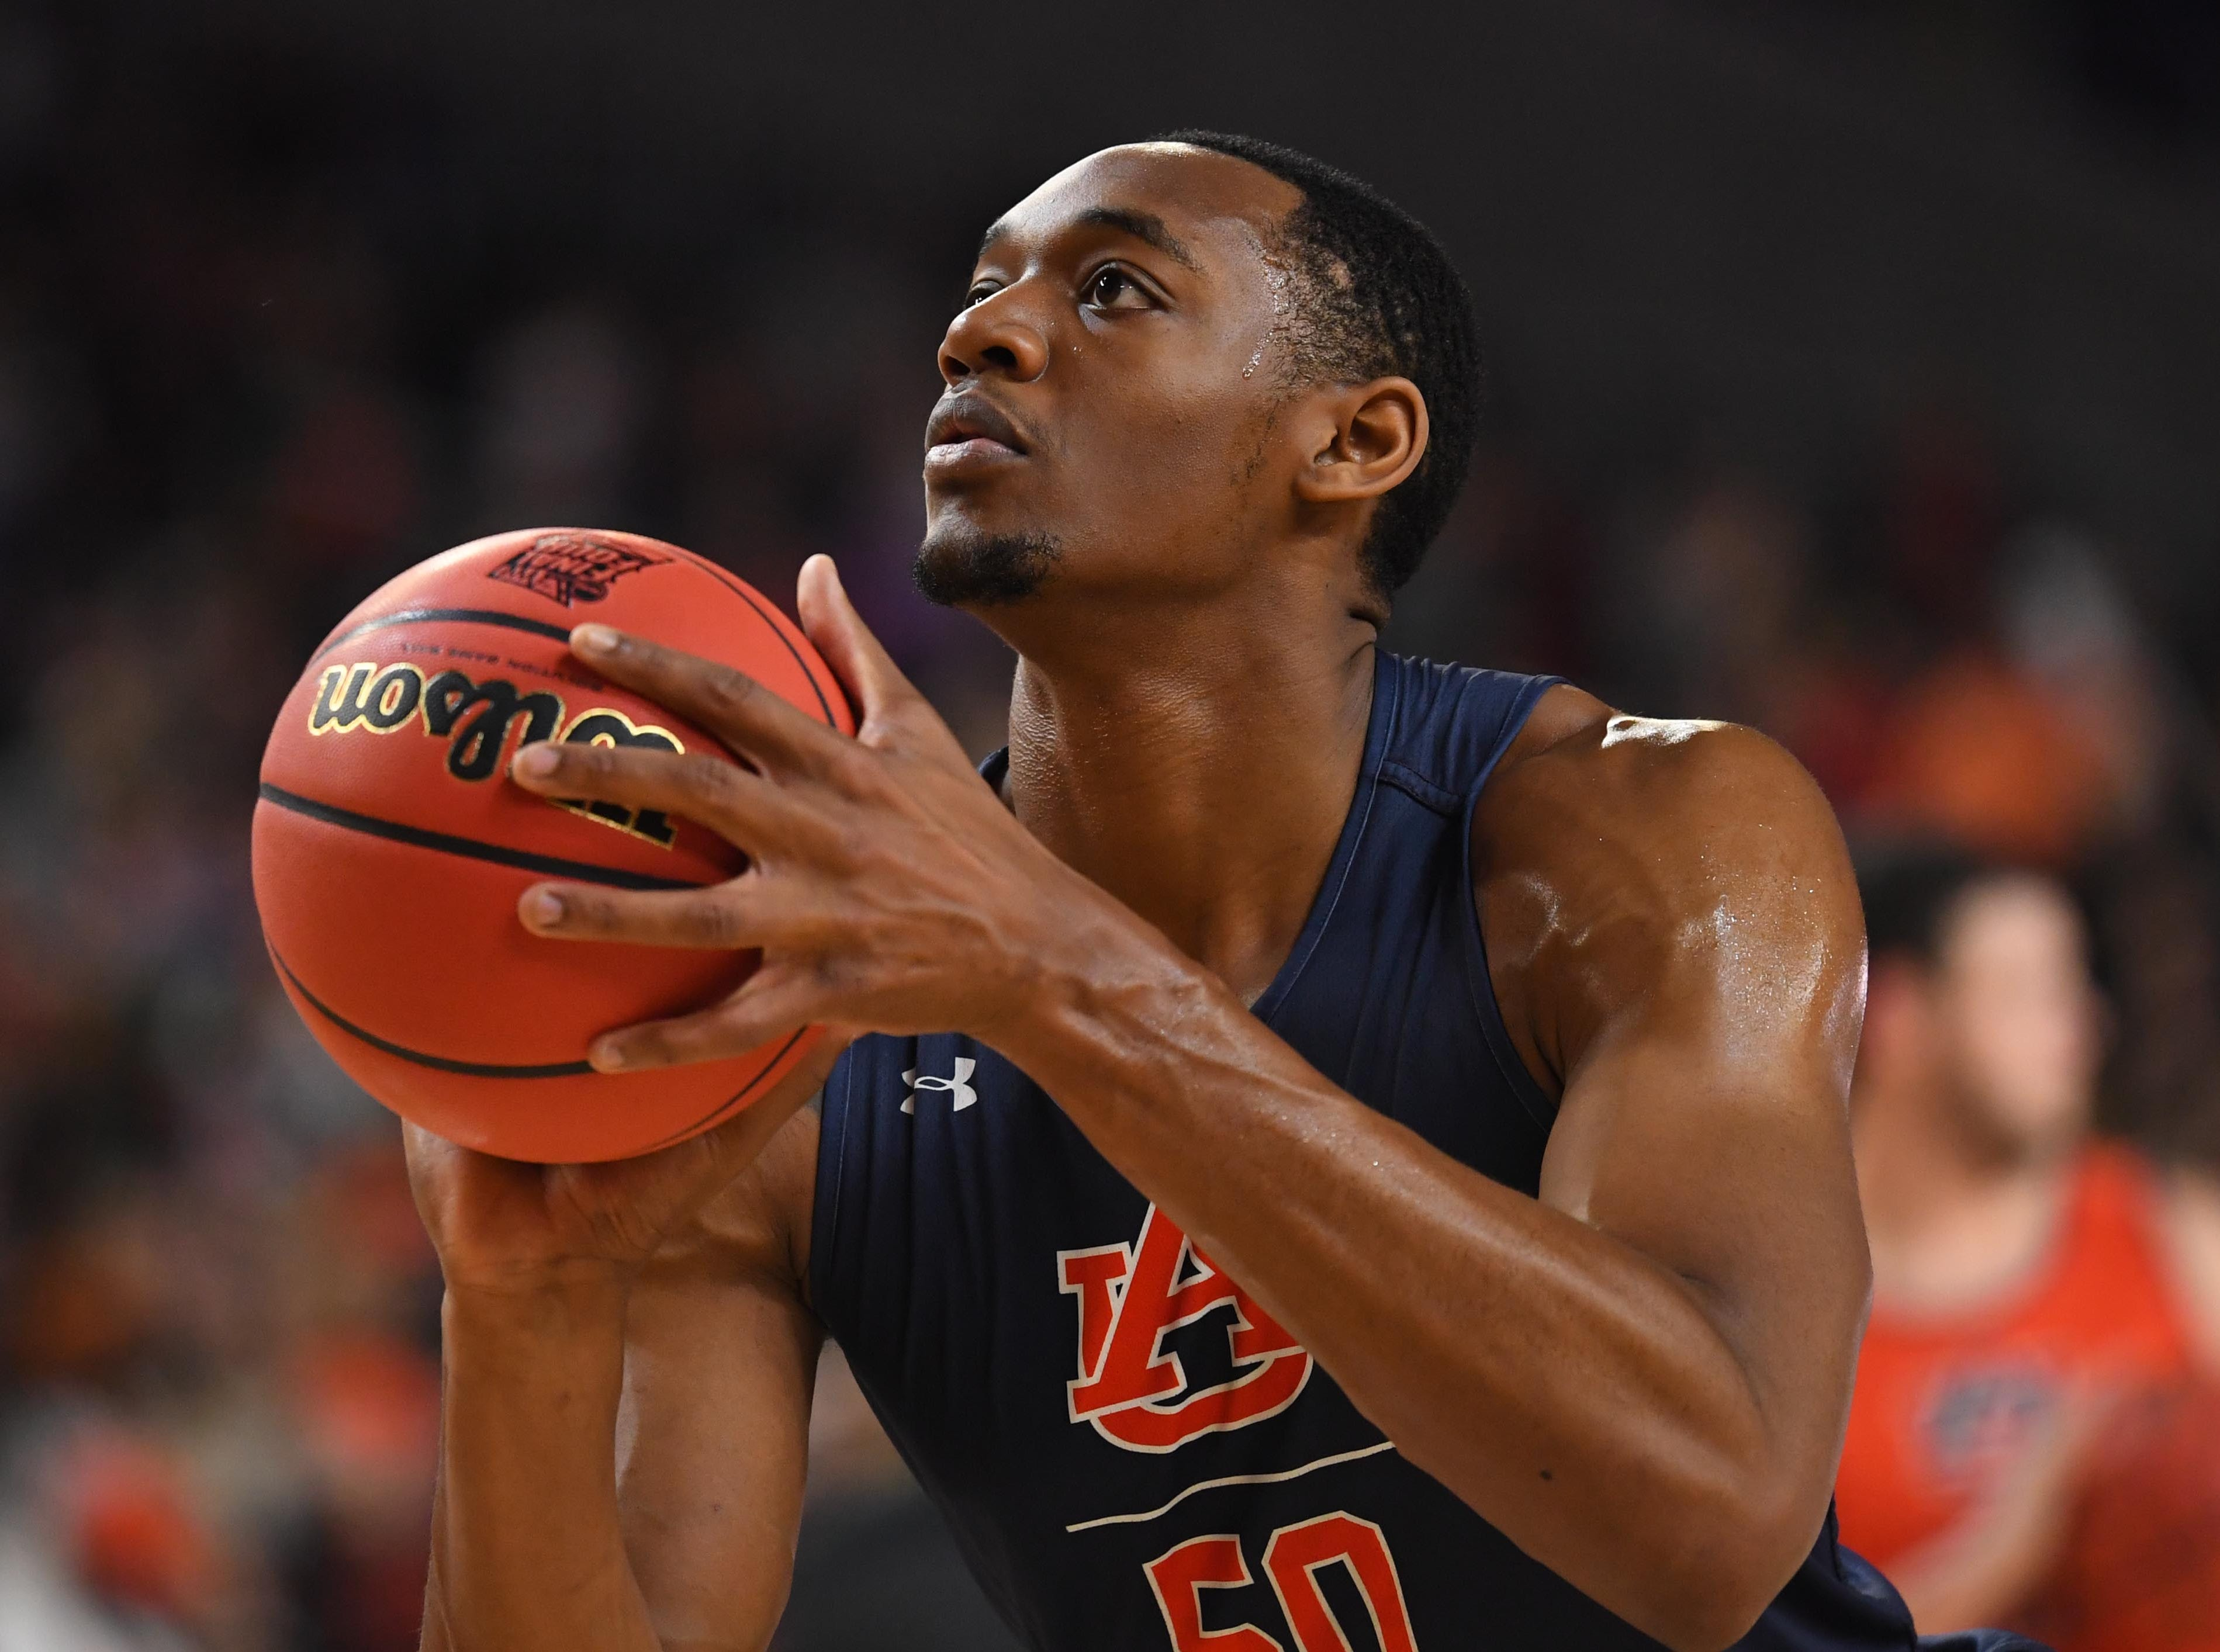 Apr 5, 2019; Minneapolis, MN, USA; Auburn Tigers center Austin Wiley (50) during practice for the 2019 men's Final Four at US Bank Stadium. Mandatory Credit: Robert Deutsch-USA TODAY Sports